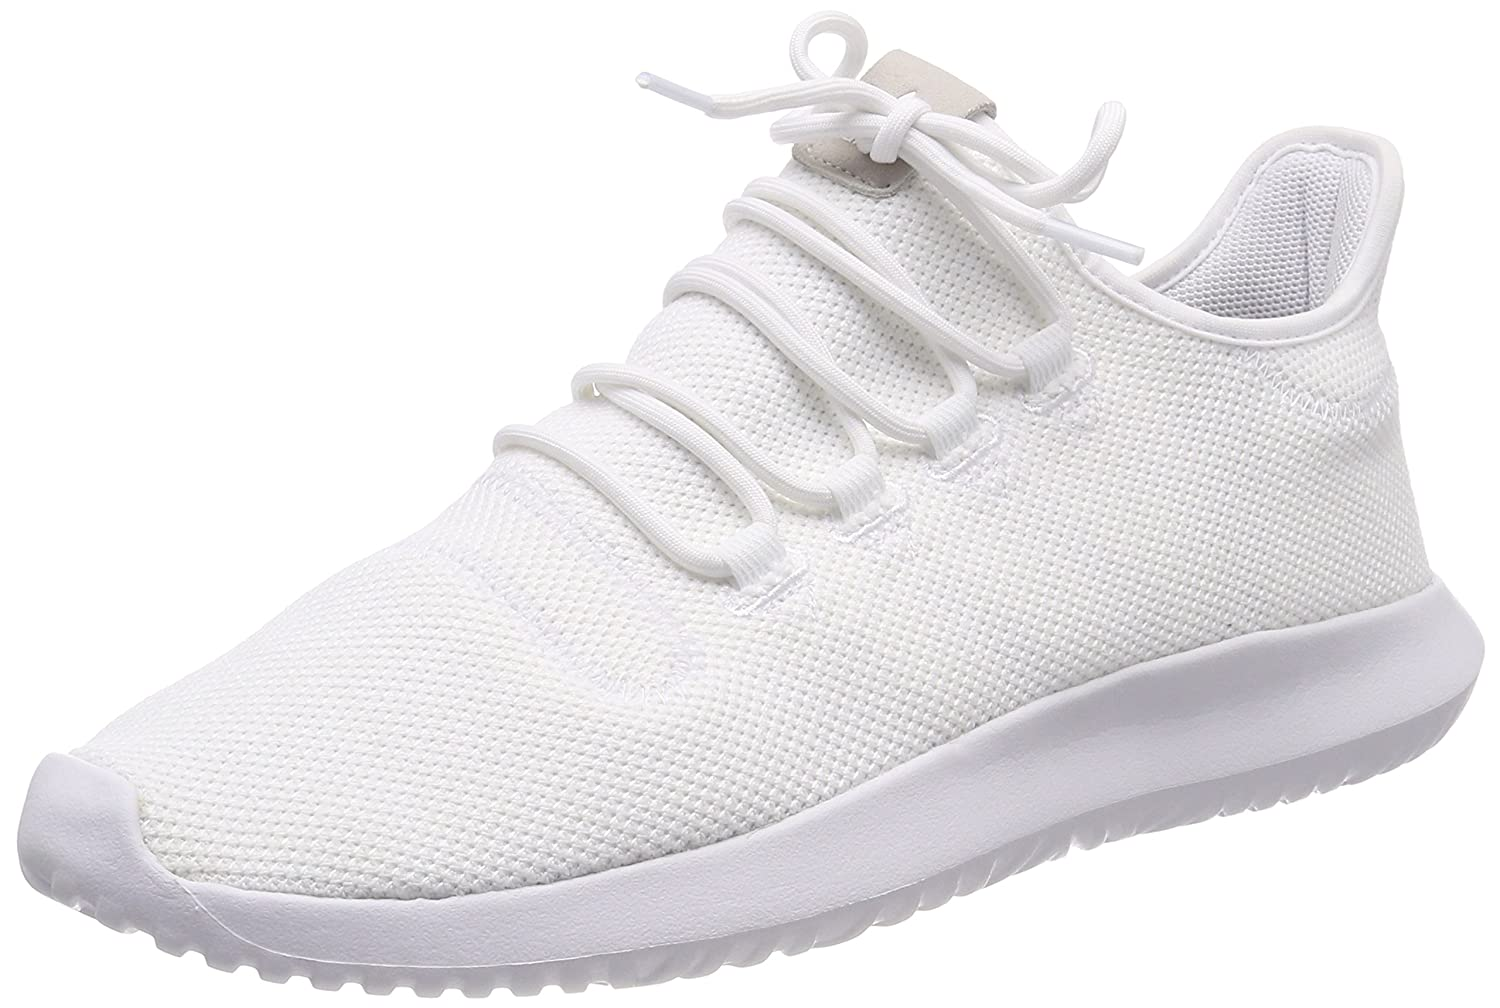 adidas Tubular Shadow Womens Trainers B072JJHHY5 8 M US|White